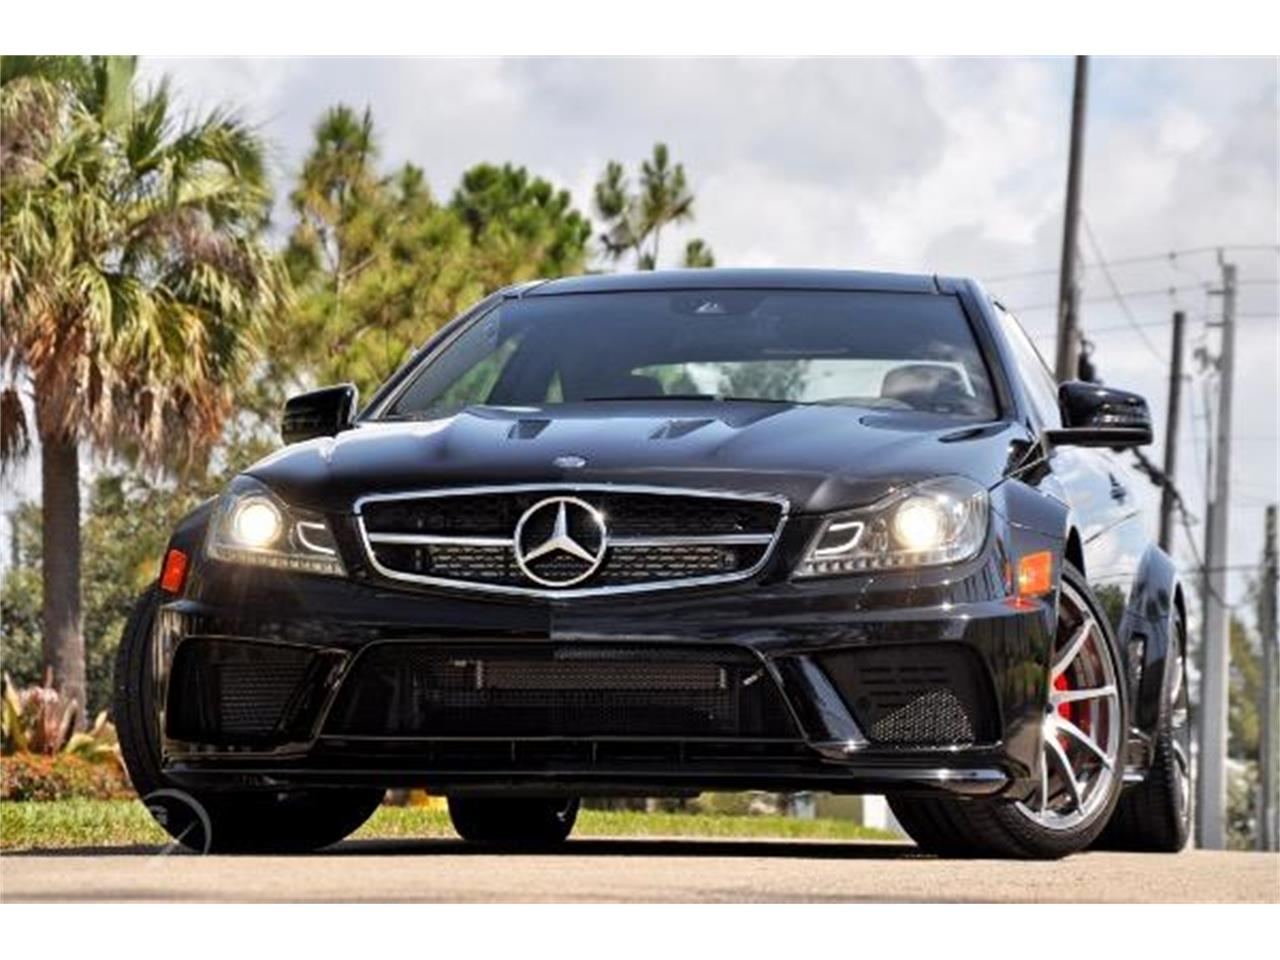 2013 Mercedes-Benz C63 AMG for sale in West Palm Beach, FL – photo 62